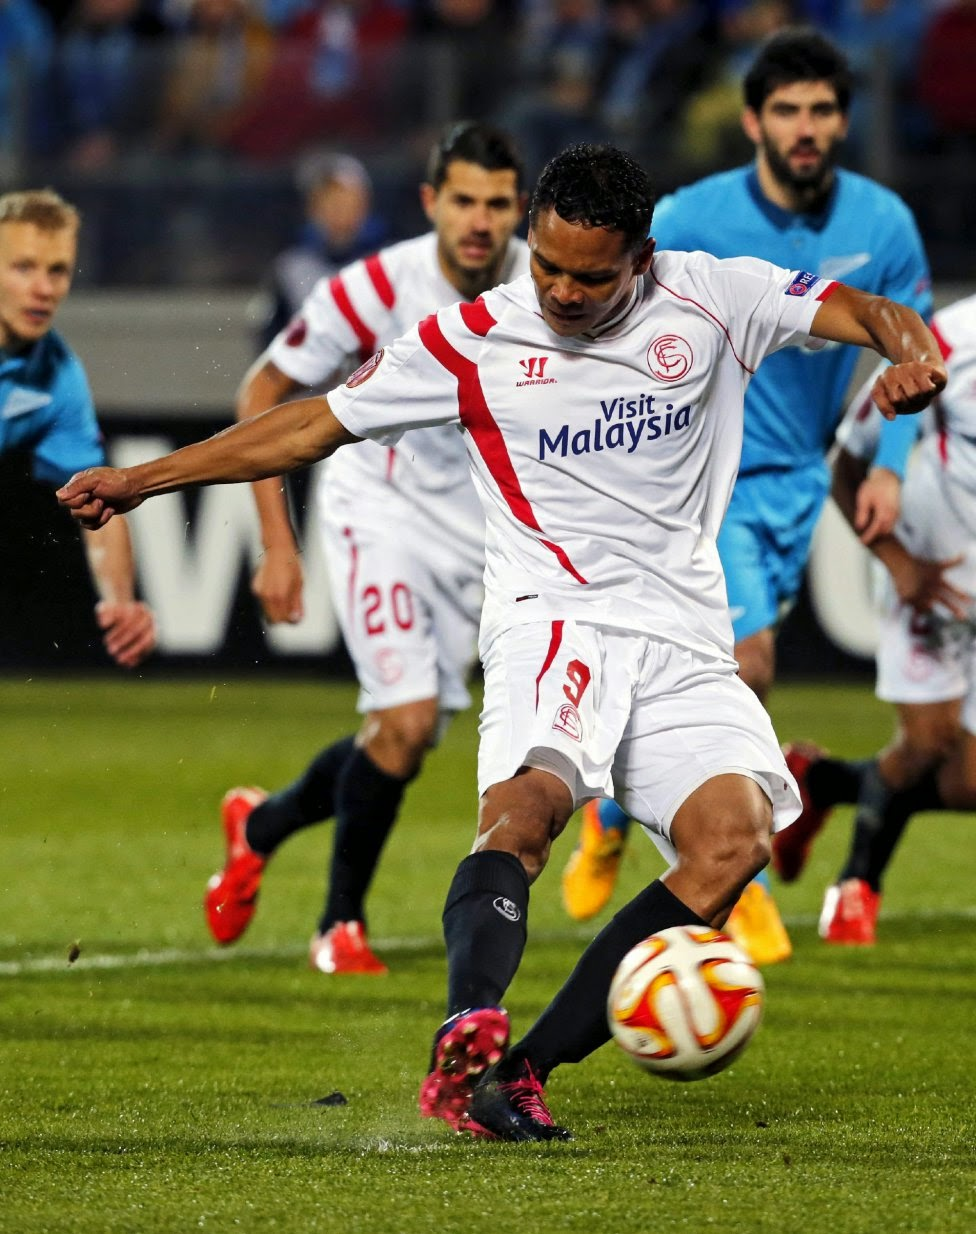 Sevilla FC vs Zenit Europa League 2015